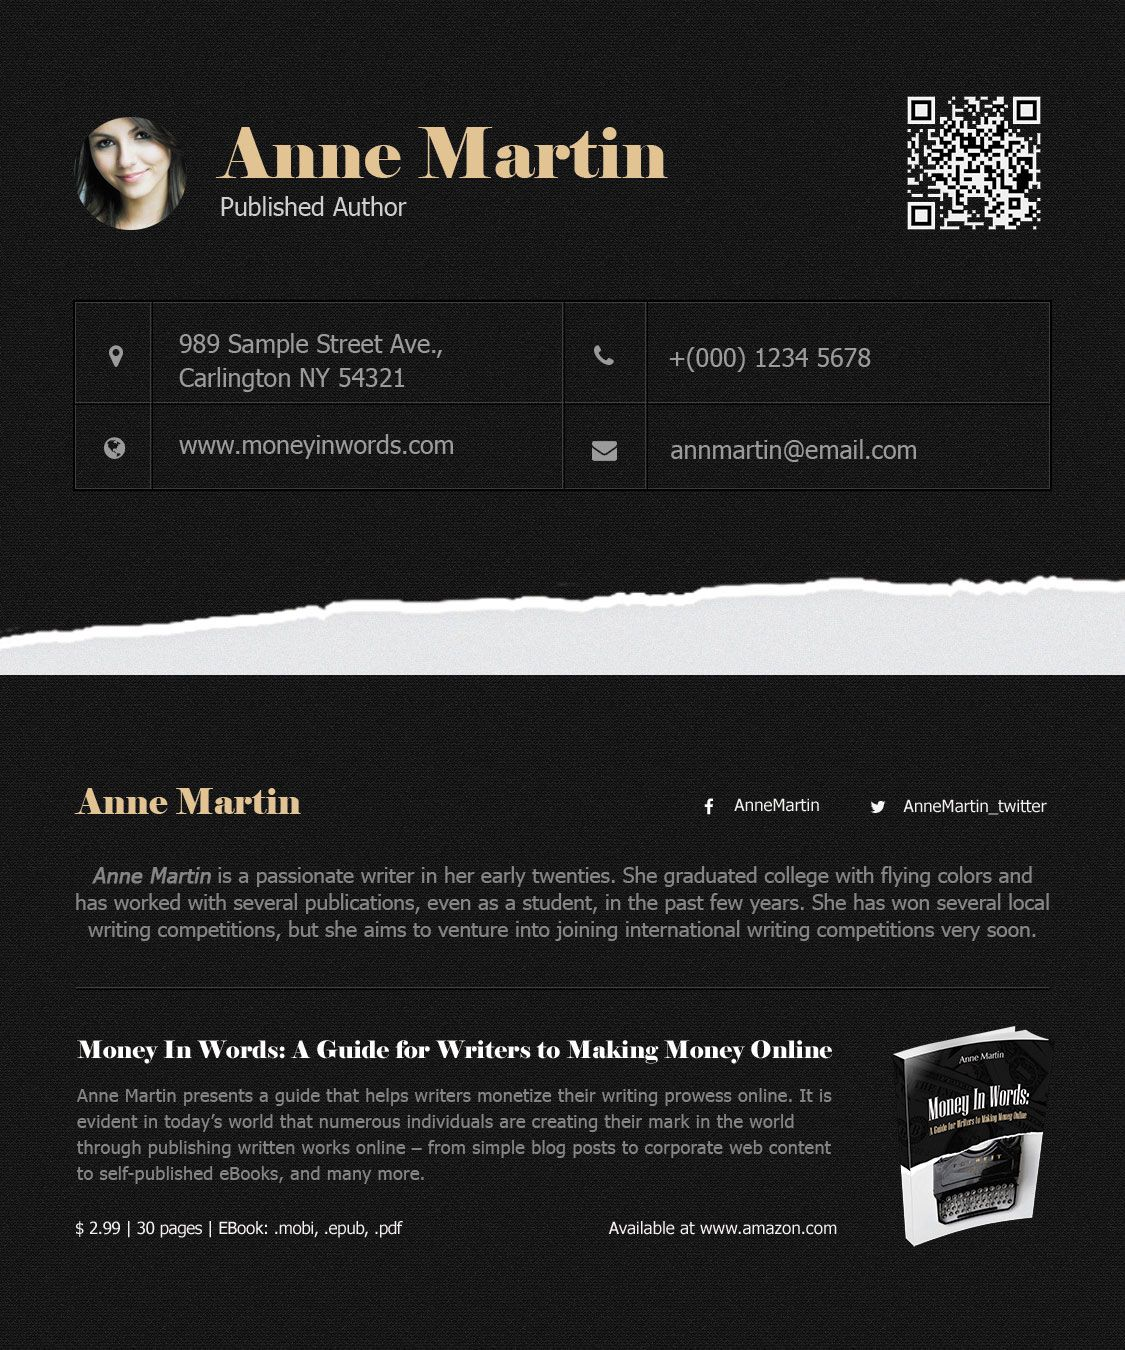 Money In Words Book Author Business Card #BusinessCard #Author ...